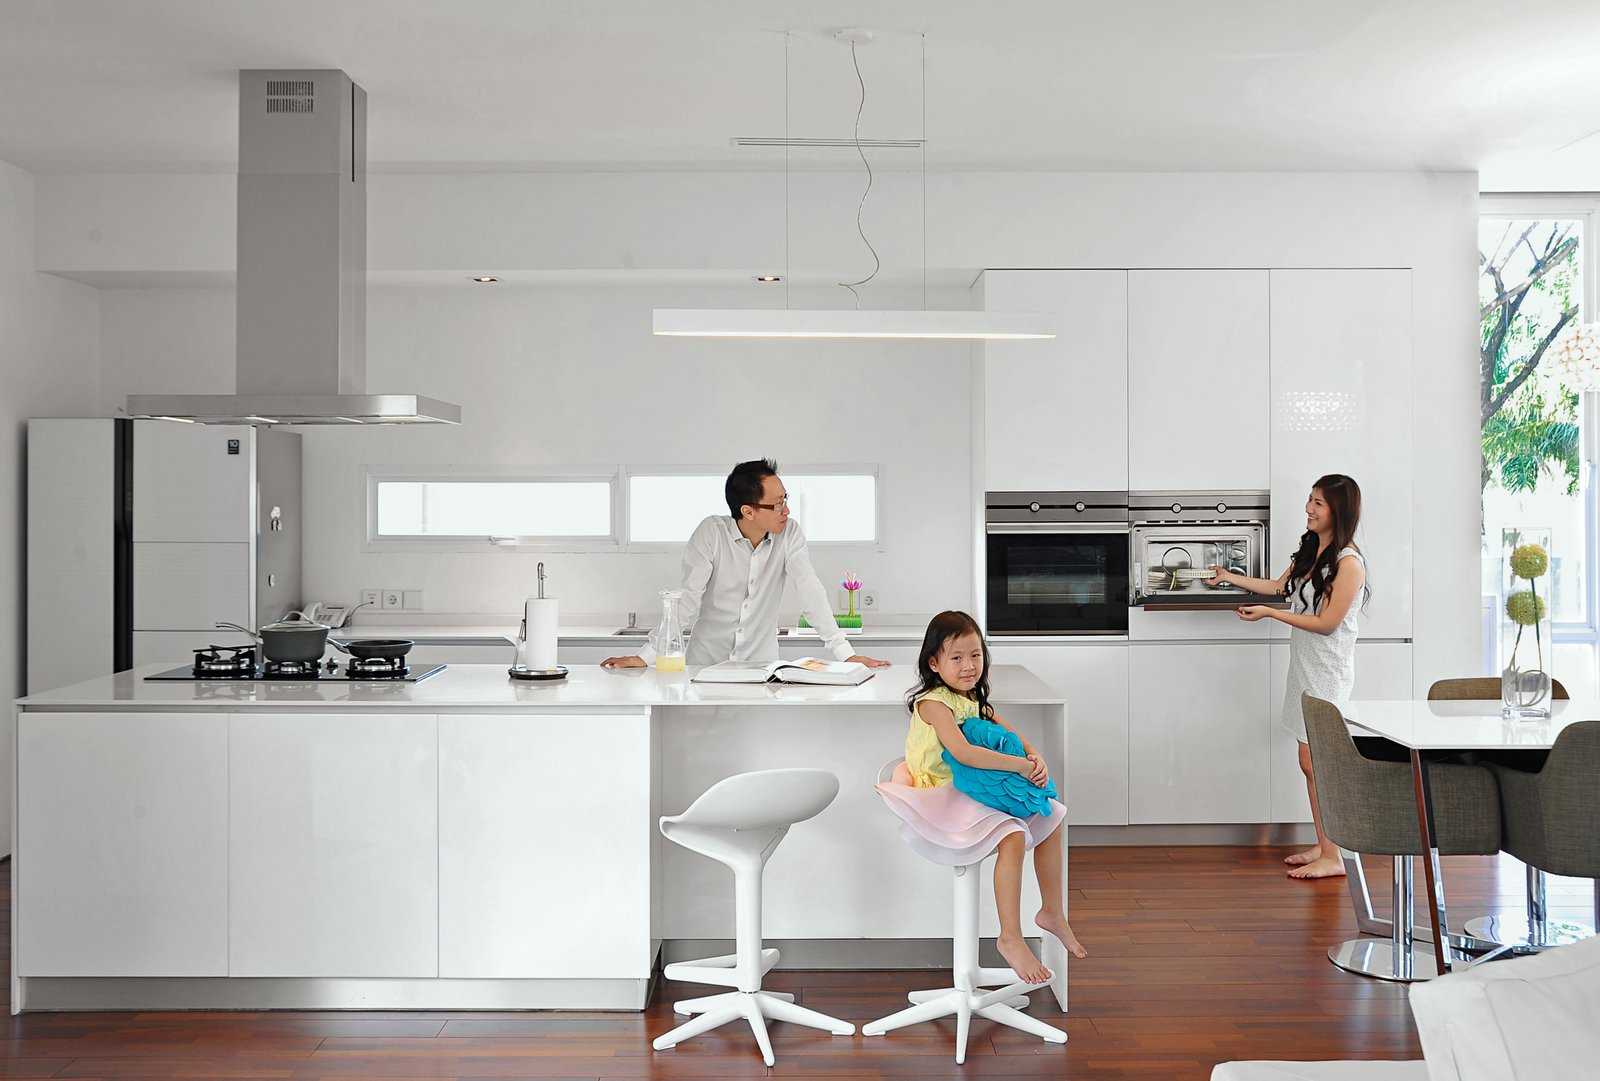 Articles about 7 winter white kitchens and bathrooms on Dwell.com